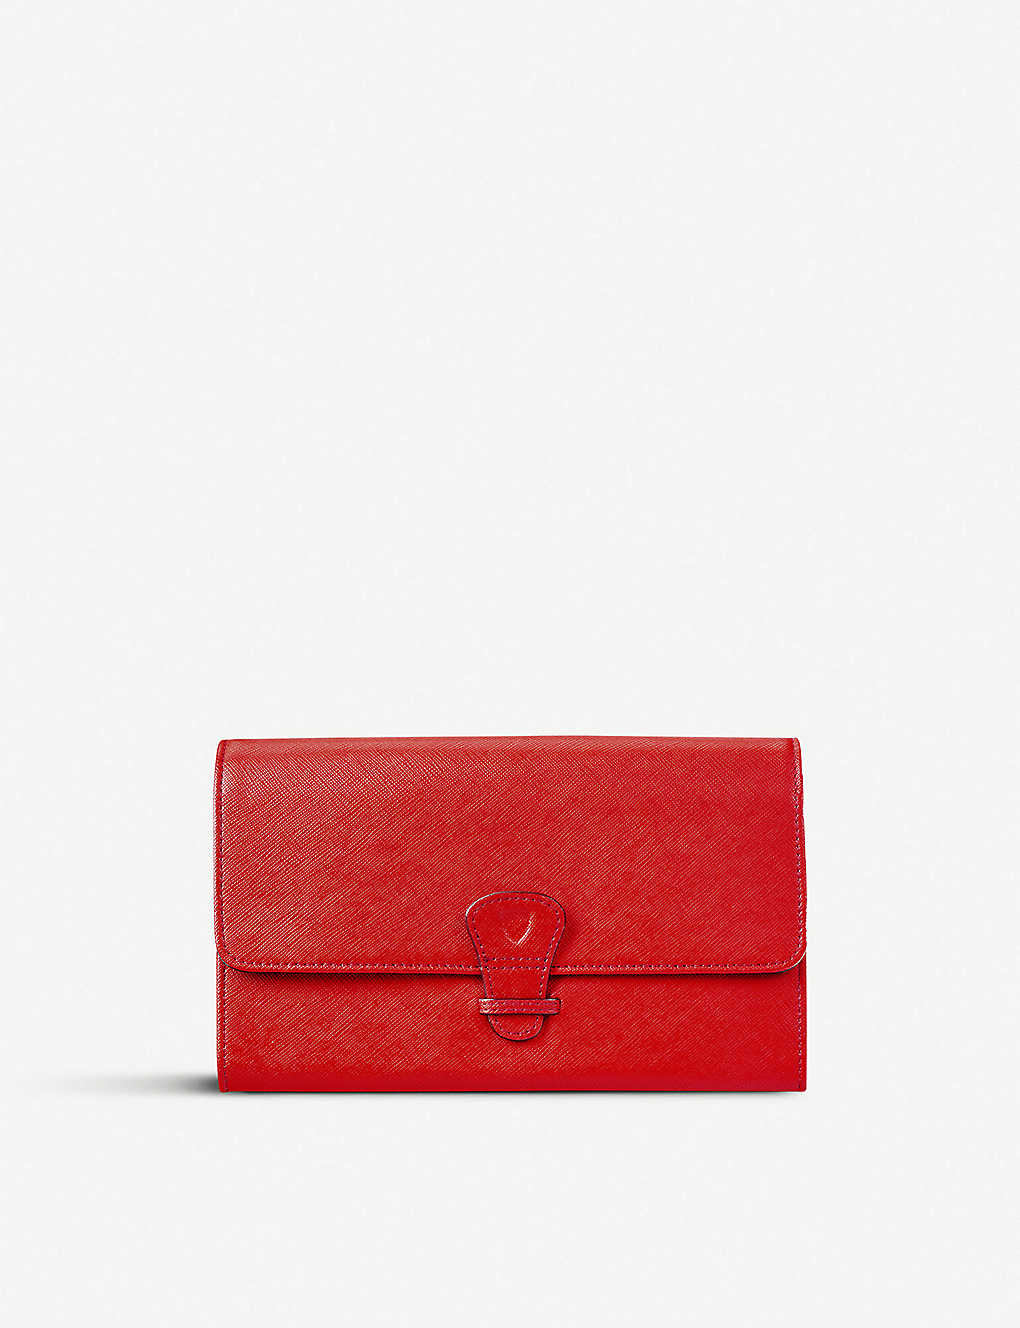 ASPINAL OF LONDON: Saffiano leather classic travel wallet